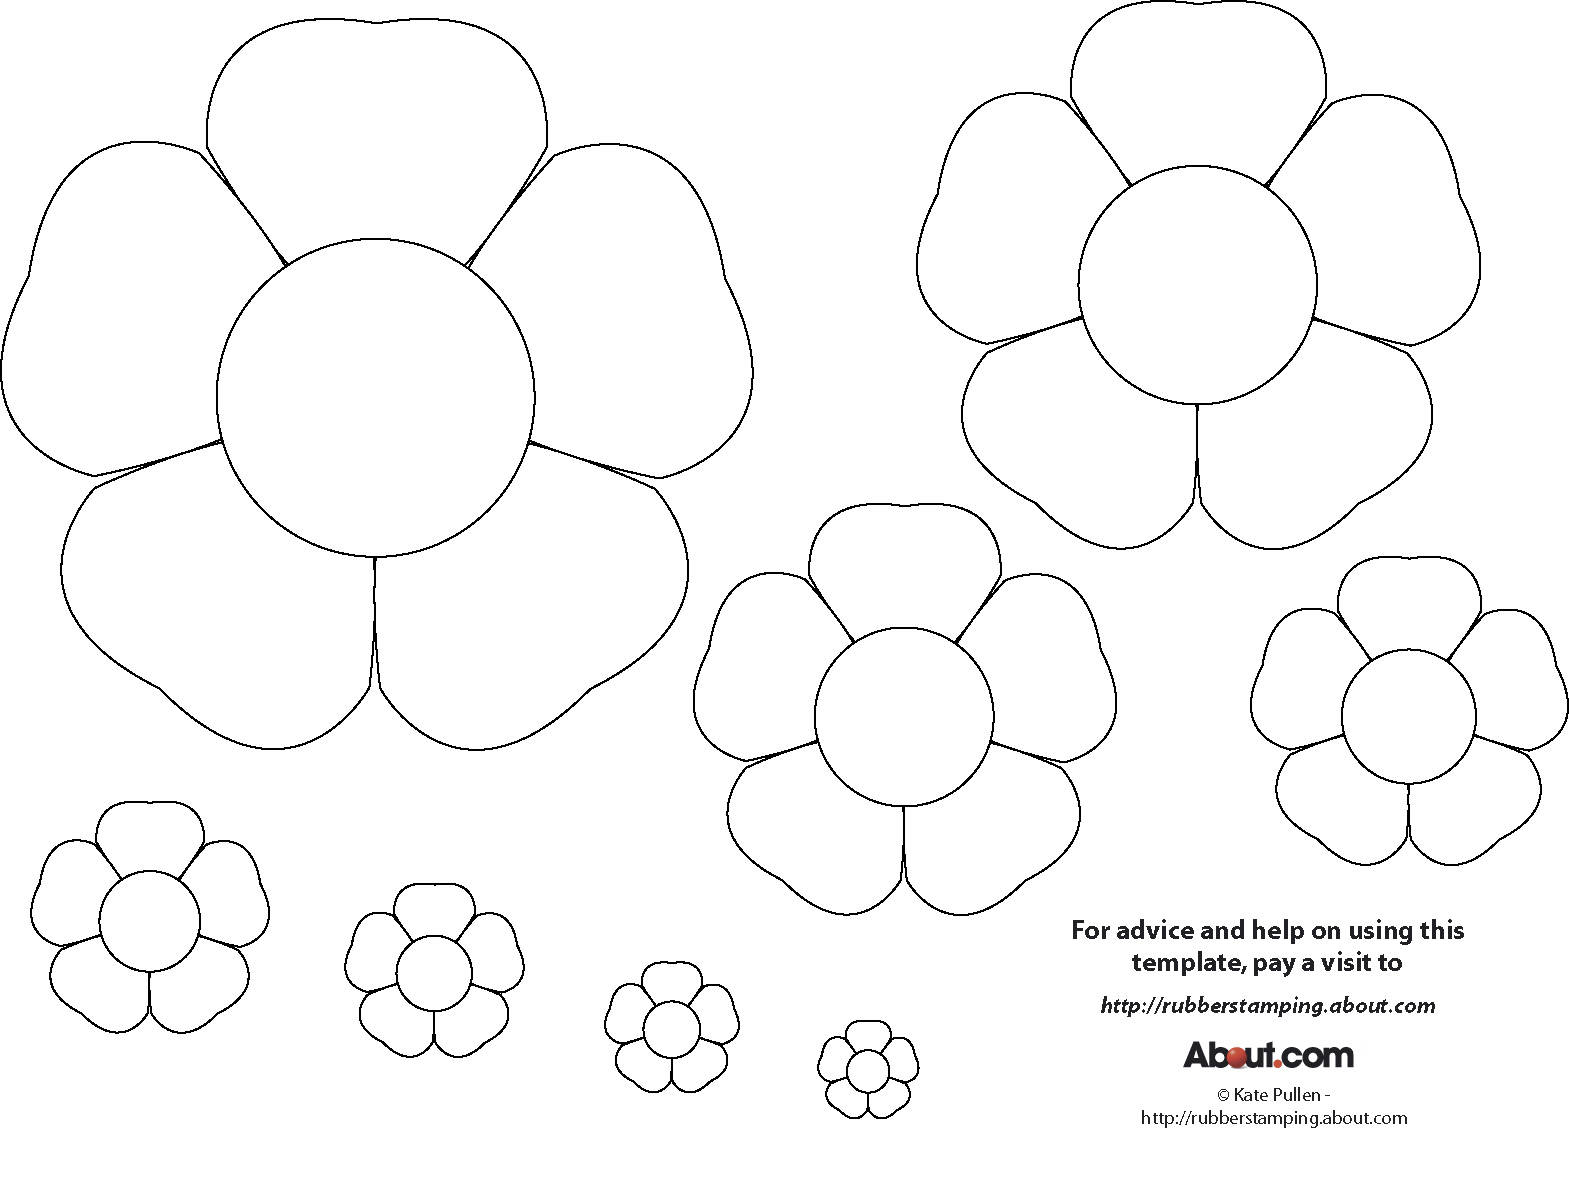 graphic relating to Free Printable Flower Templates referred to as 15 Printable Flower Behavior Styles Visuals - Paper Flower